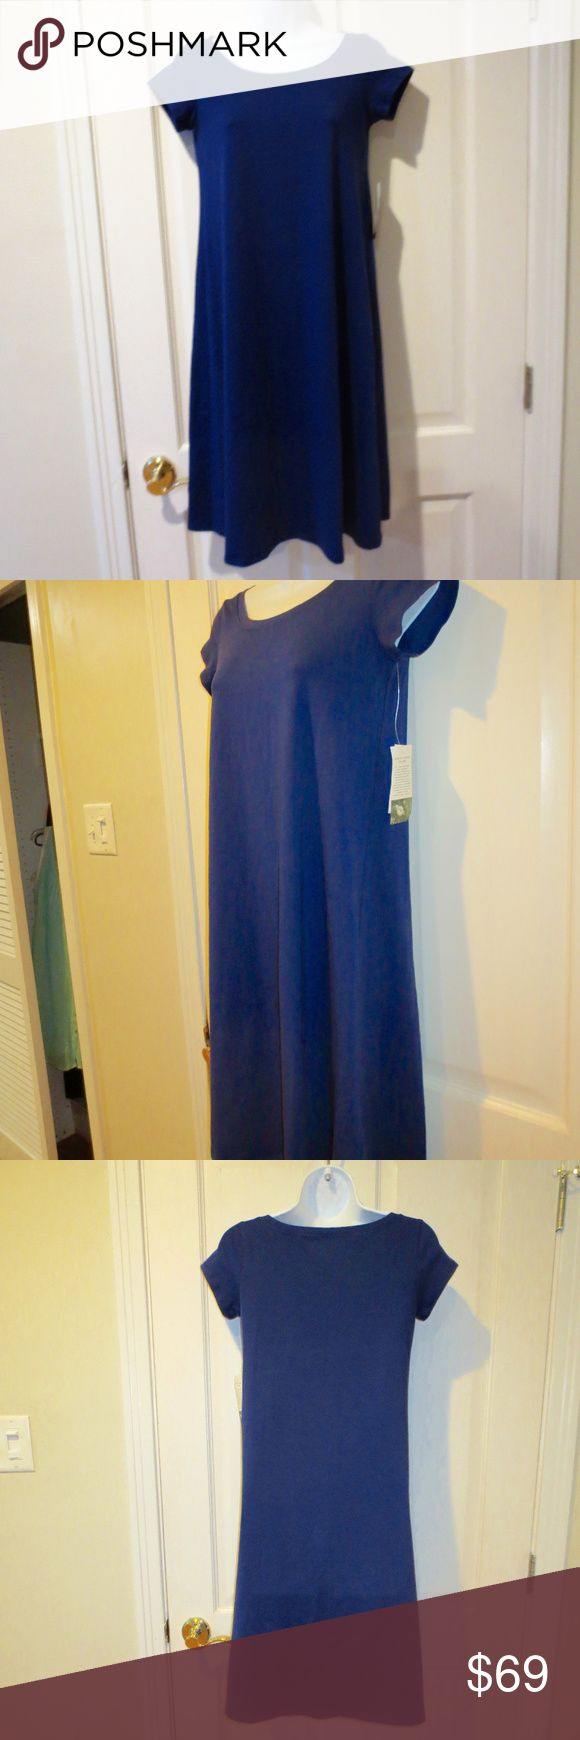 Eileen Fisher Organic Cotton Stretch Jersey Dress New with tags. Color is Sapphire. Cap Sleeves, ballet neck and knee length - attractive, flare length. Size PP. Eileen Fisher Dresses